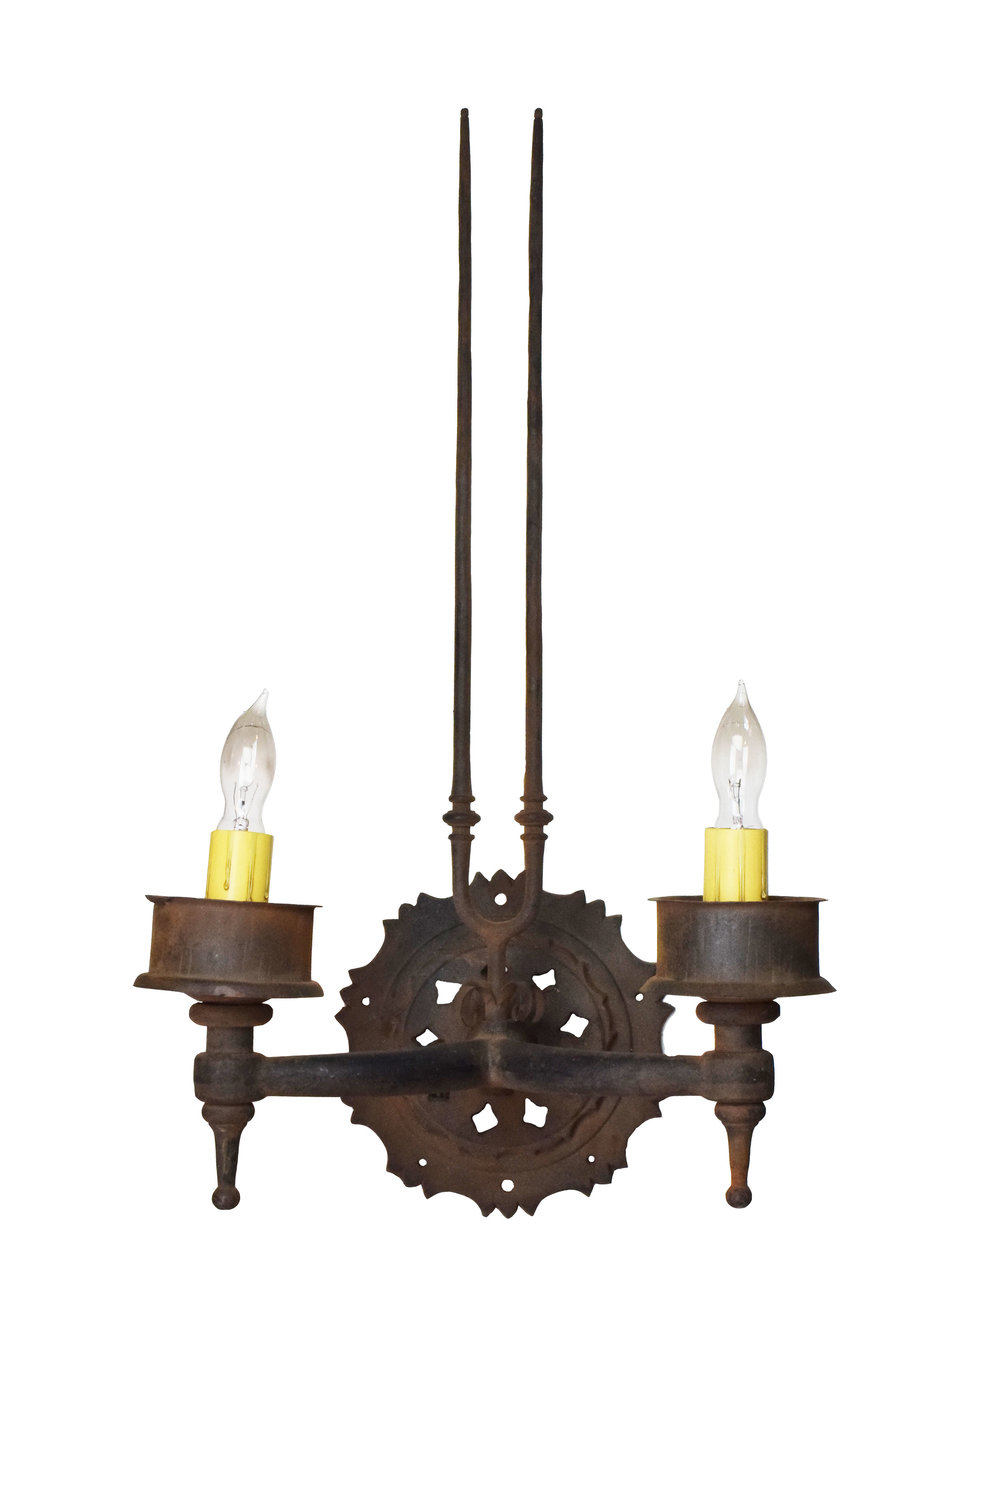 46997-iron-2-candle-sconce-with-prongs-main.jpg